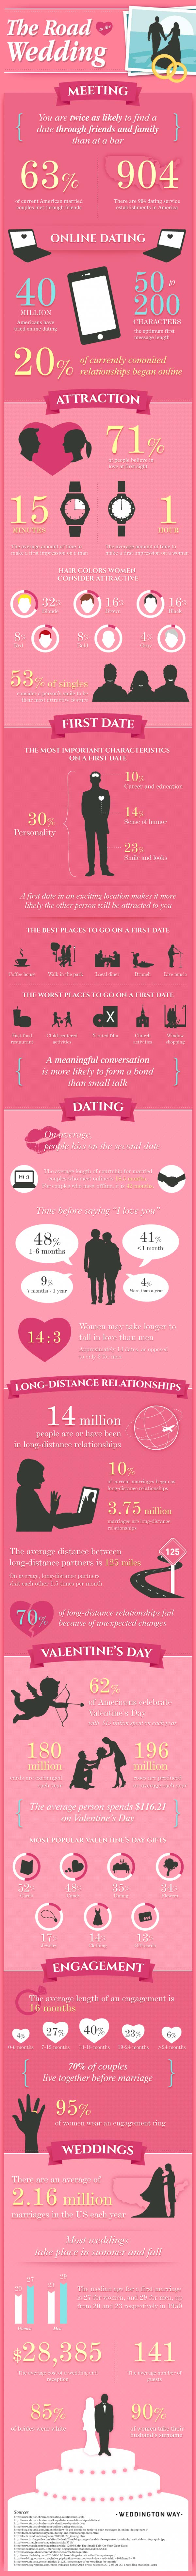 Go Wedding-Infographic